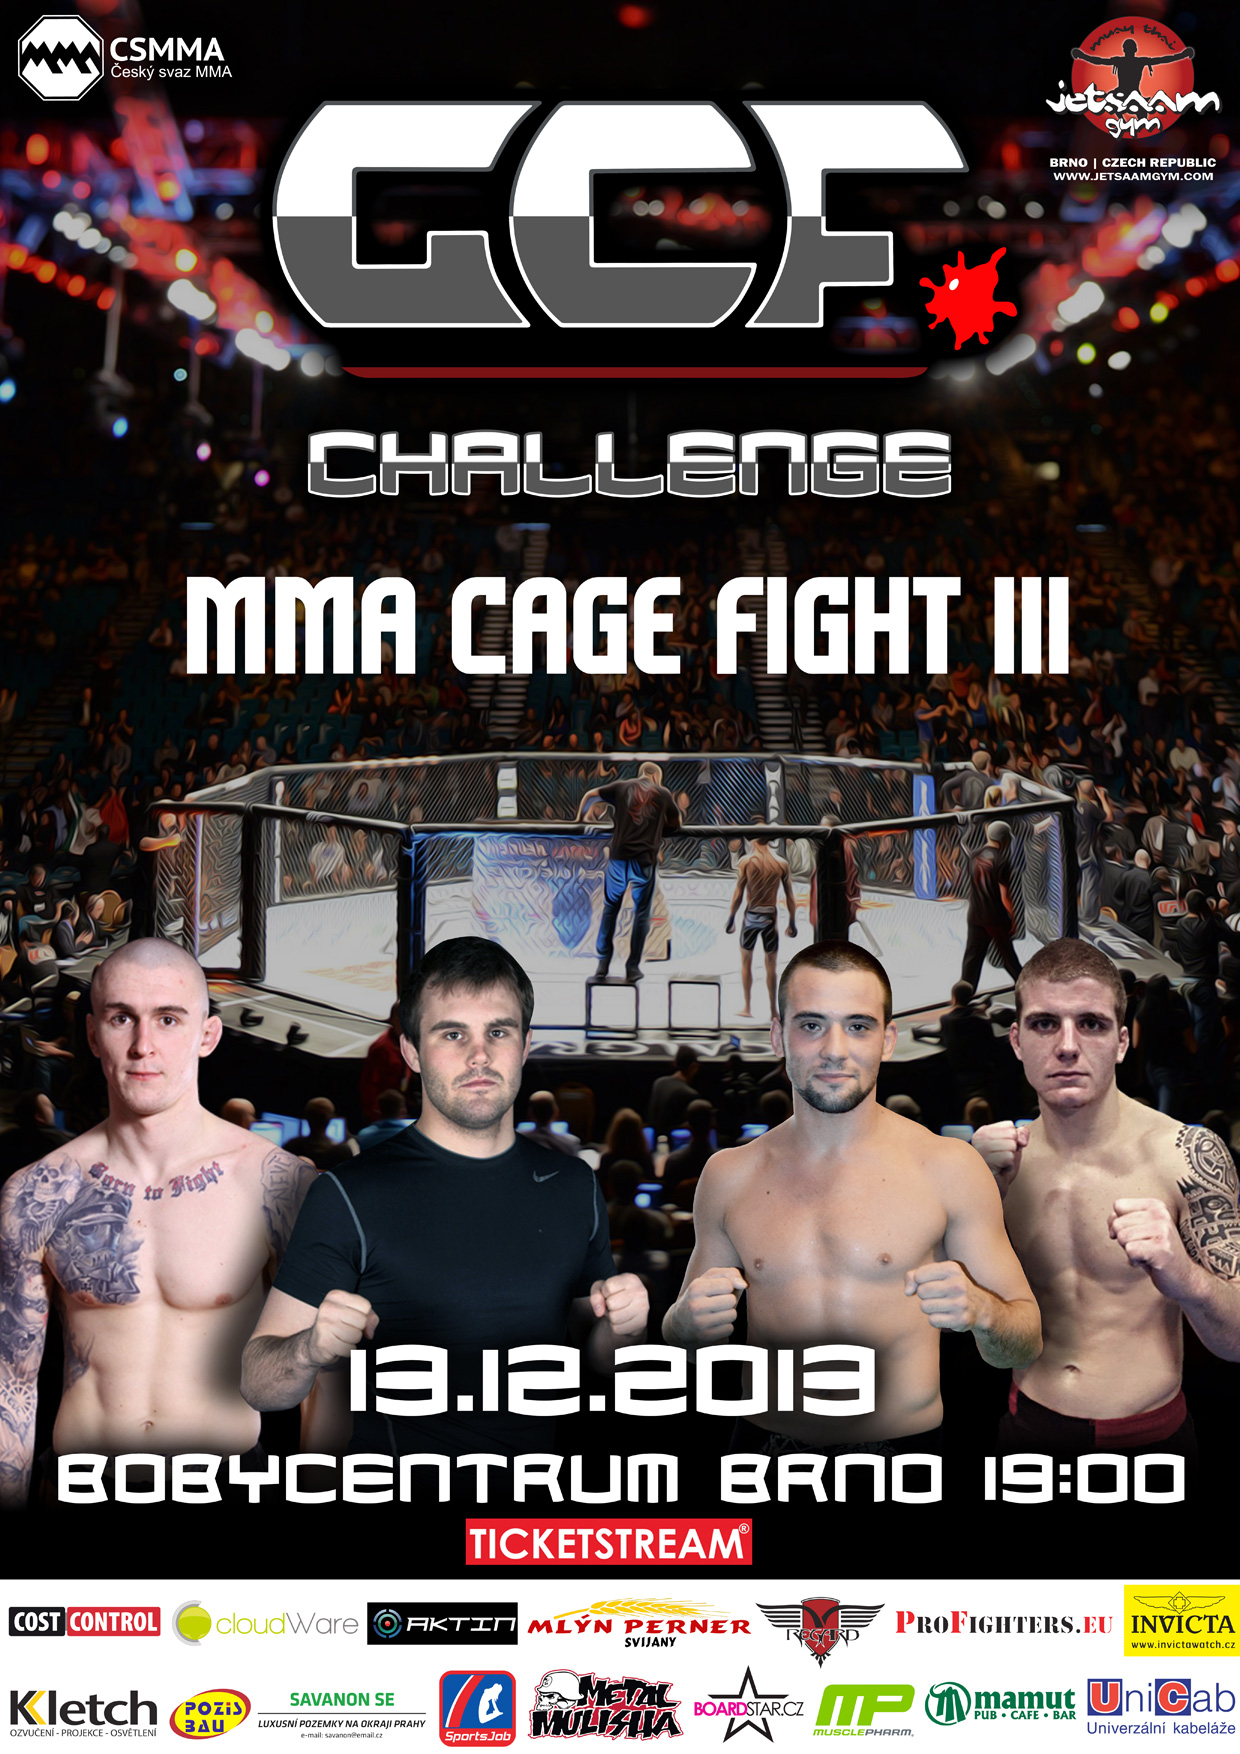 mma-cage-fight-3-a4-2013